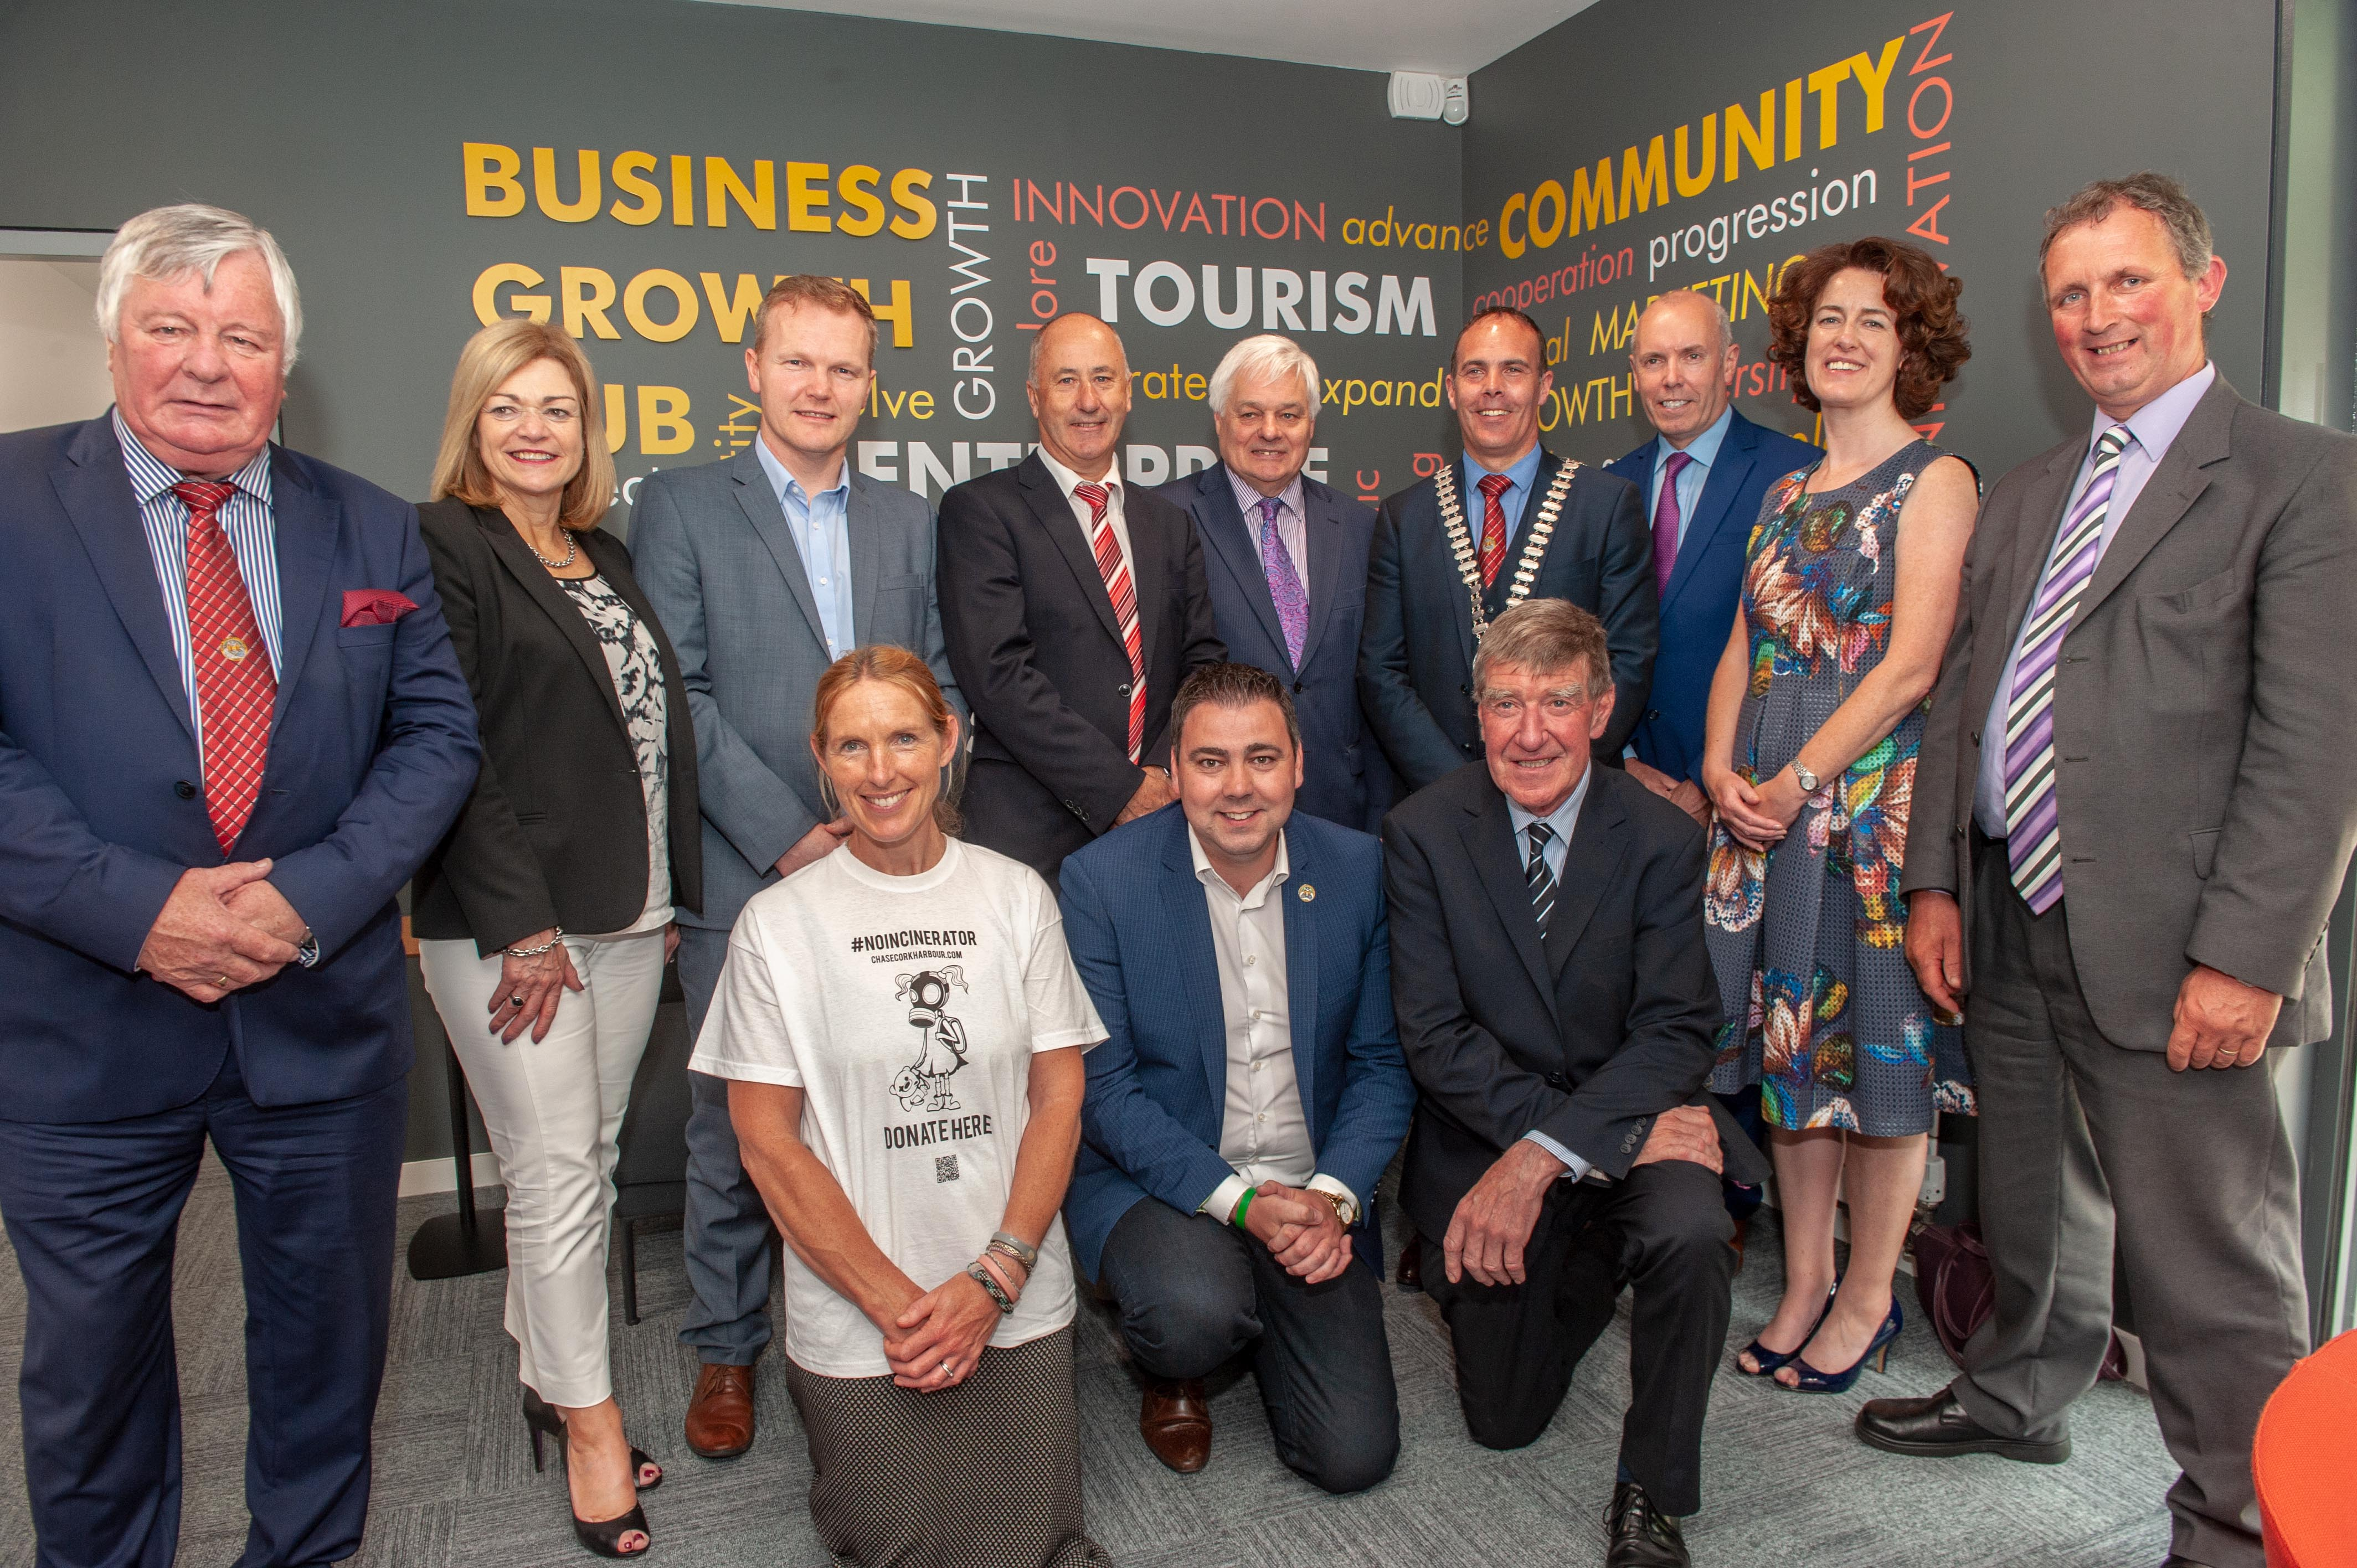 Cork County Council Officially Opens Business Growth Hub